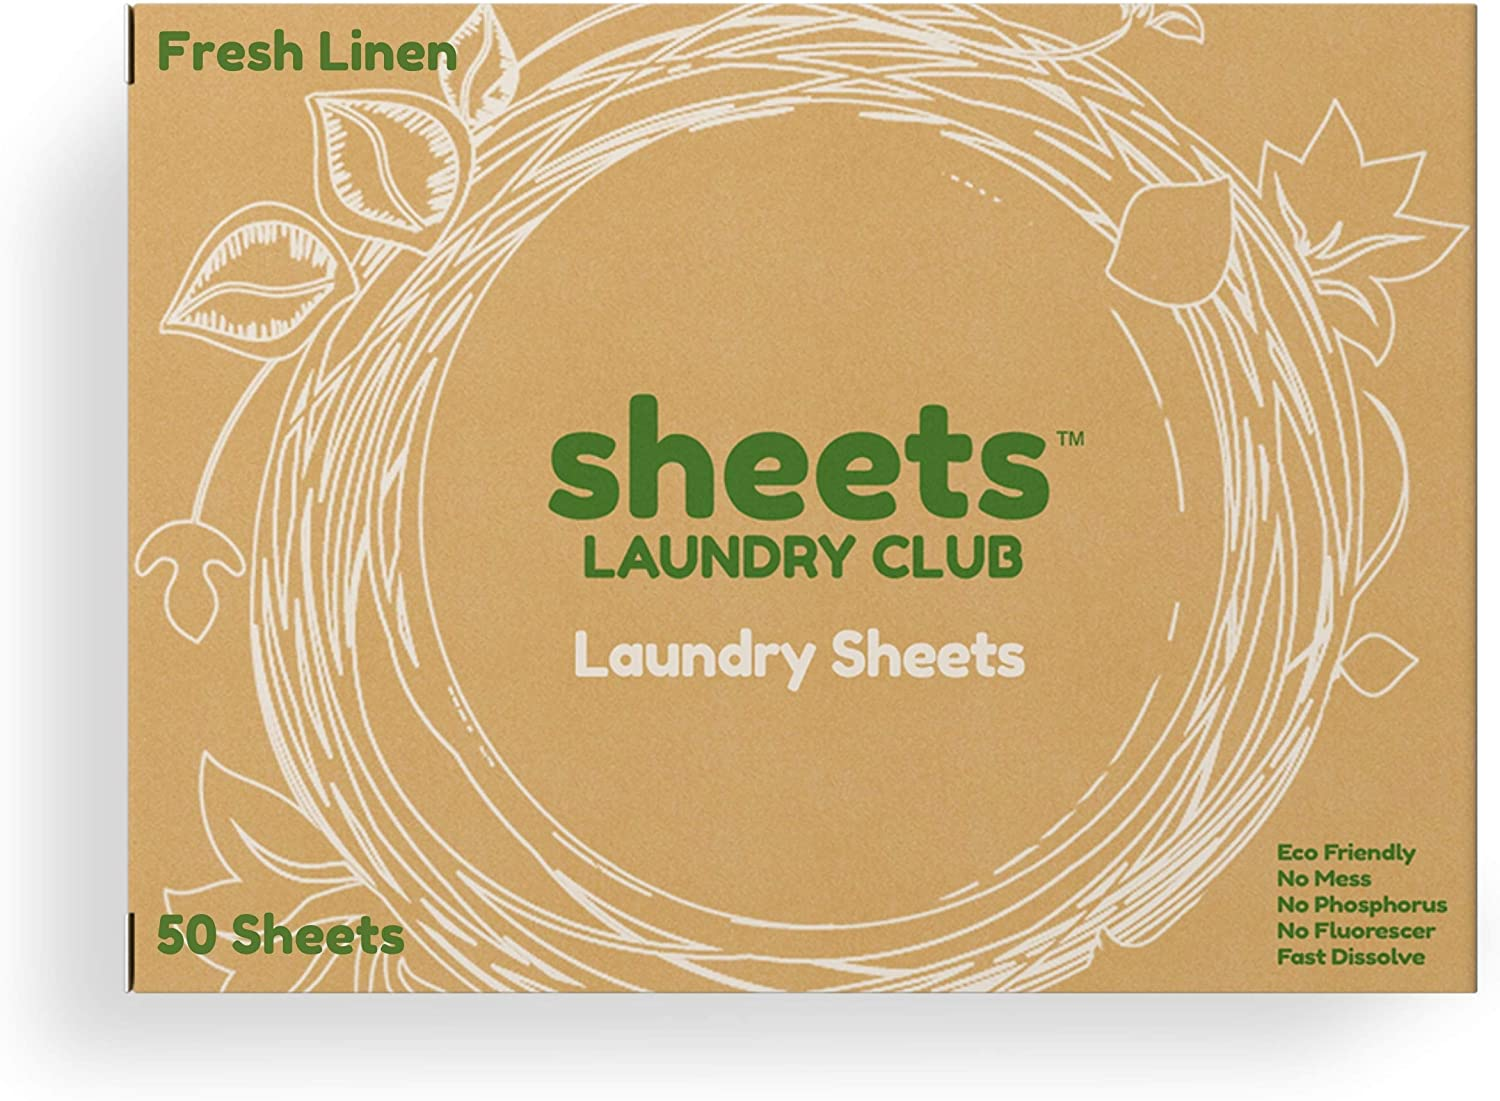 SHEETS LAUNDRY CLUB On-the-go Detergent